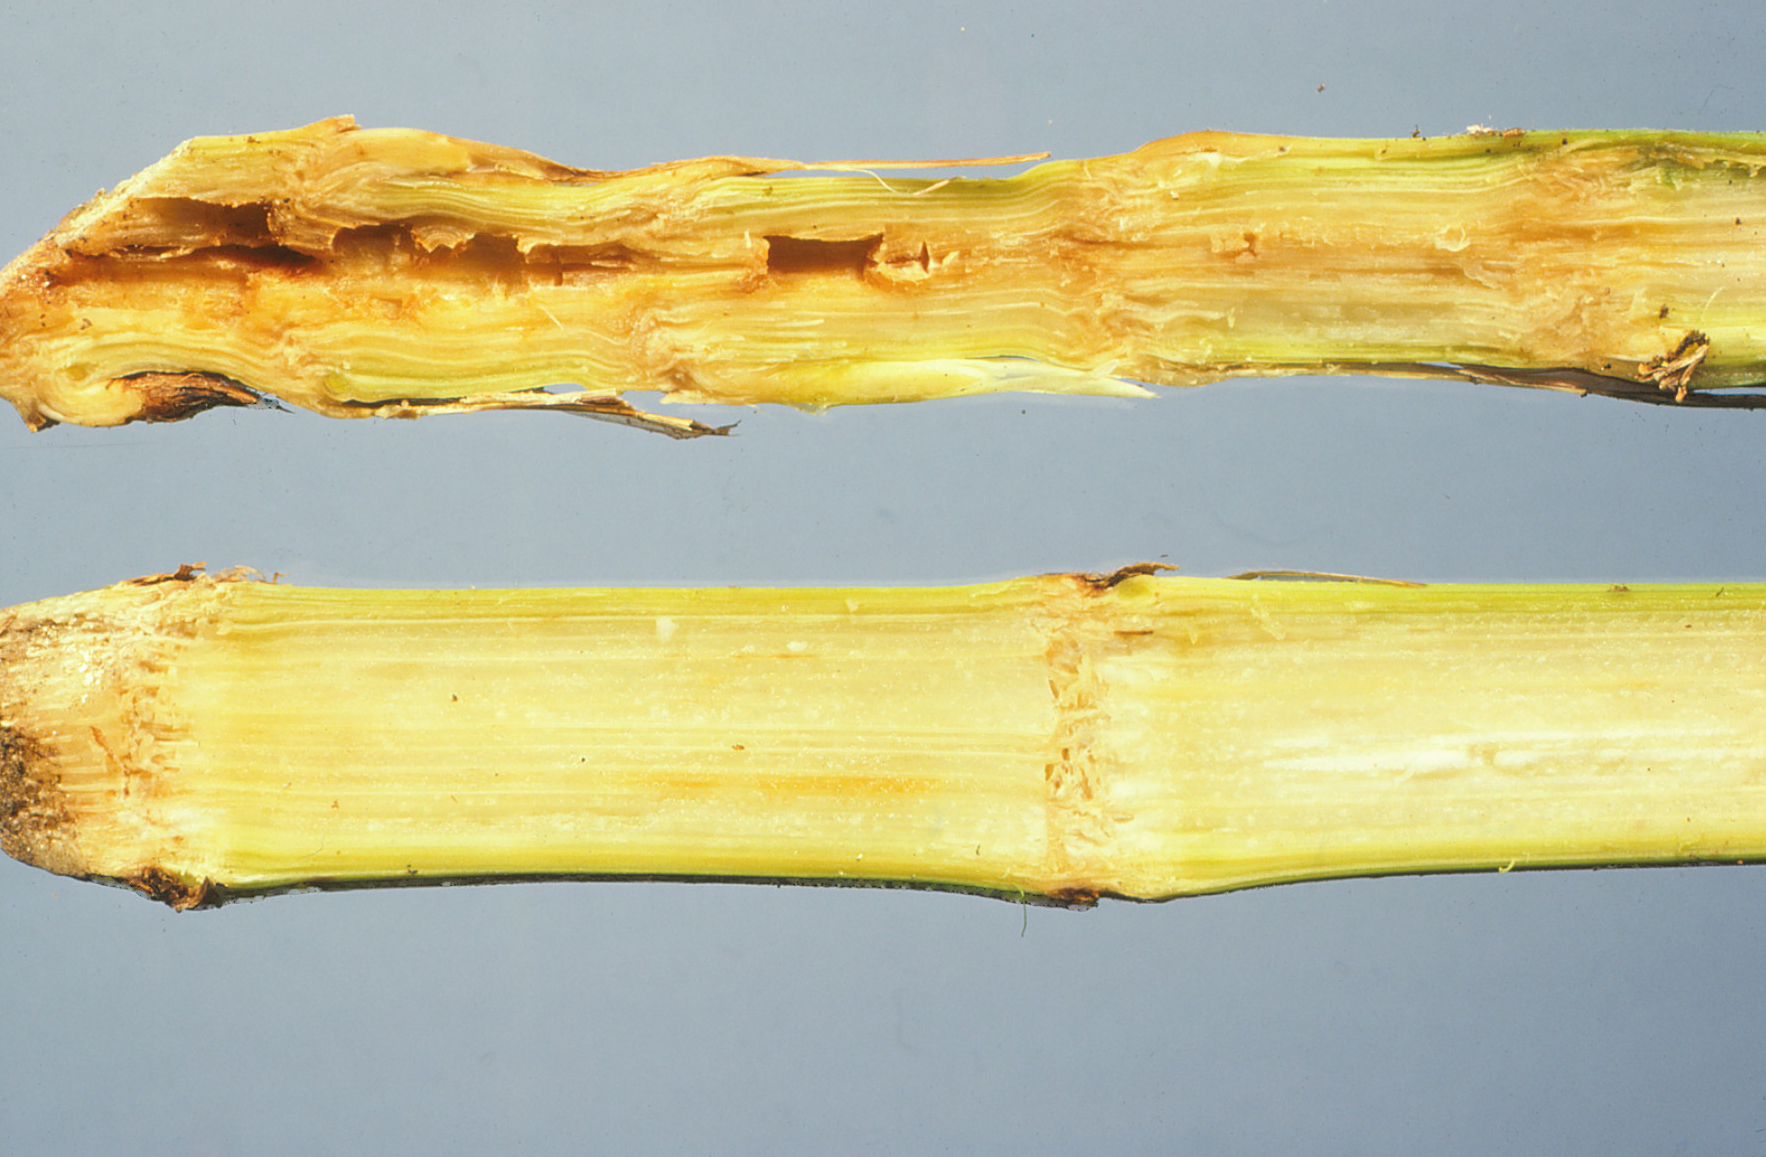 Goss's wilt stalk symptoms.